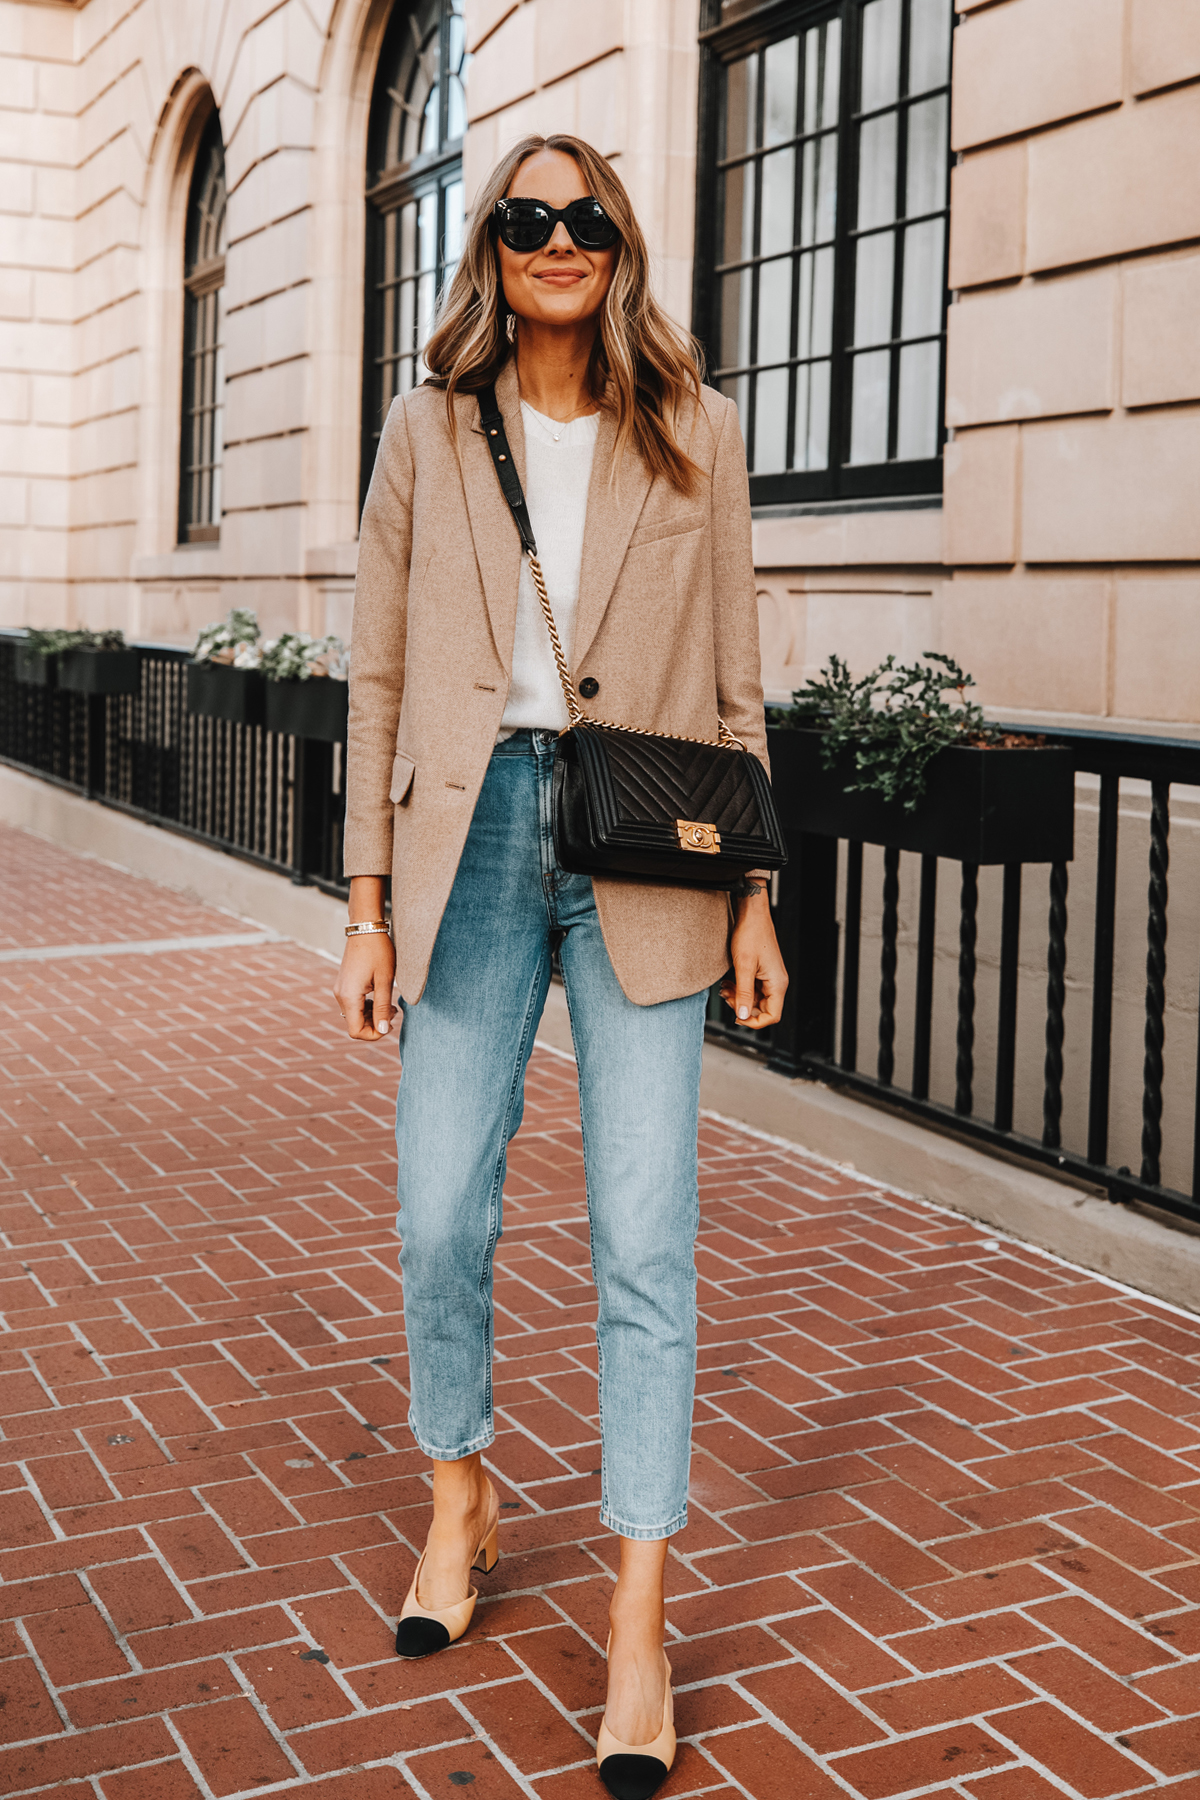 Fashion Jackson Wearing Everlane Oversized Blazer Beige Twill White Sweater Casual Jeans Chanel Slingbacks Chanel Boy Bag Business Casual Outfit 2